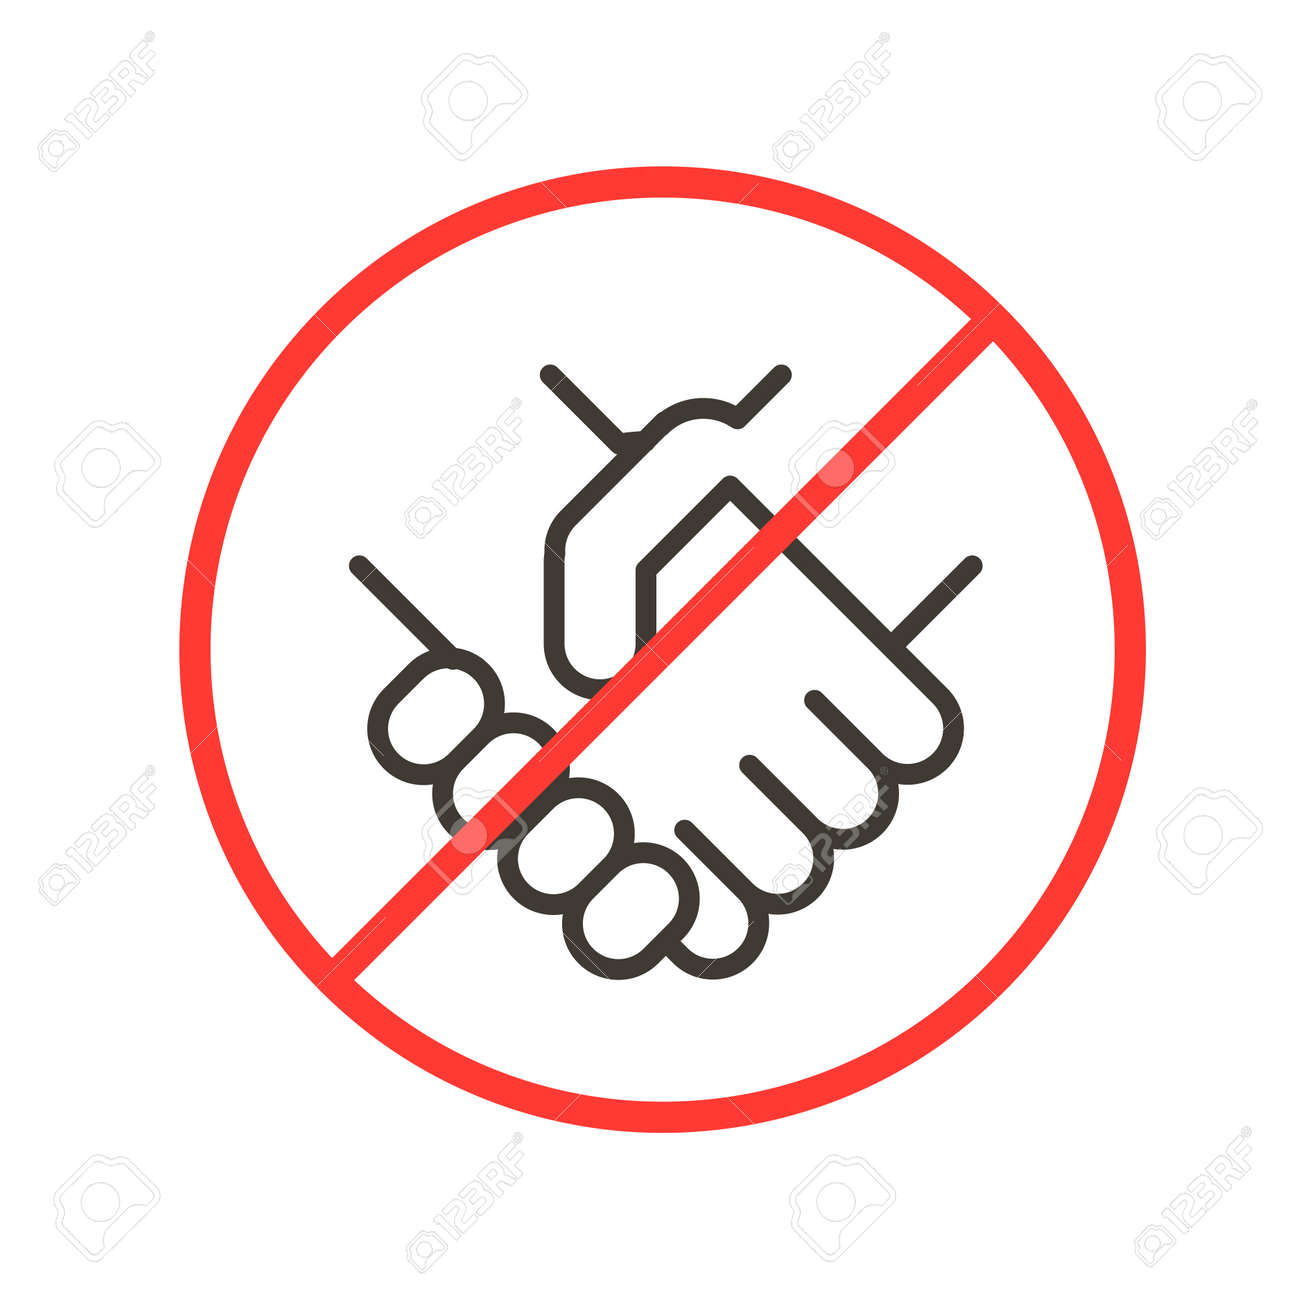 Avoiding physical contact. Vector thin line icon illustration with forbidden handshake symbols. Social distancing and safety tips for pandemics like covid-19 coronavirus outbreak - 158456309